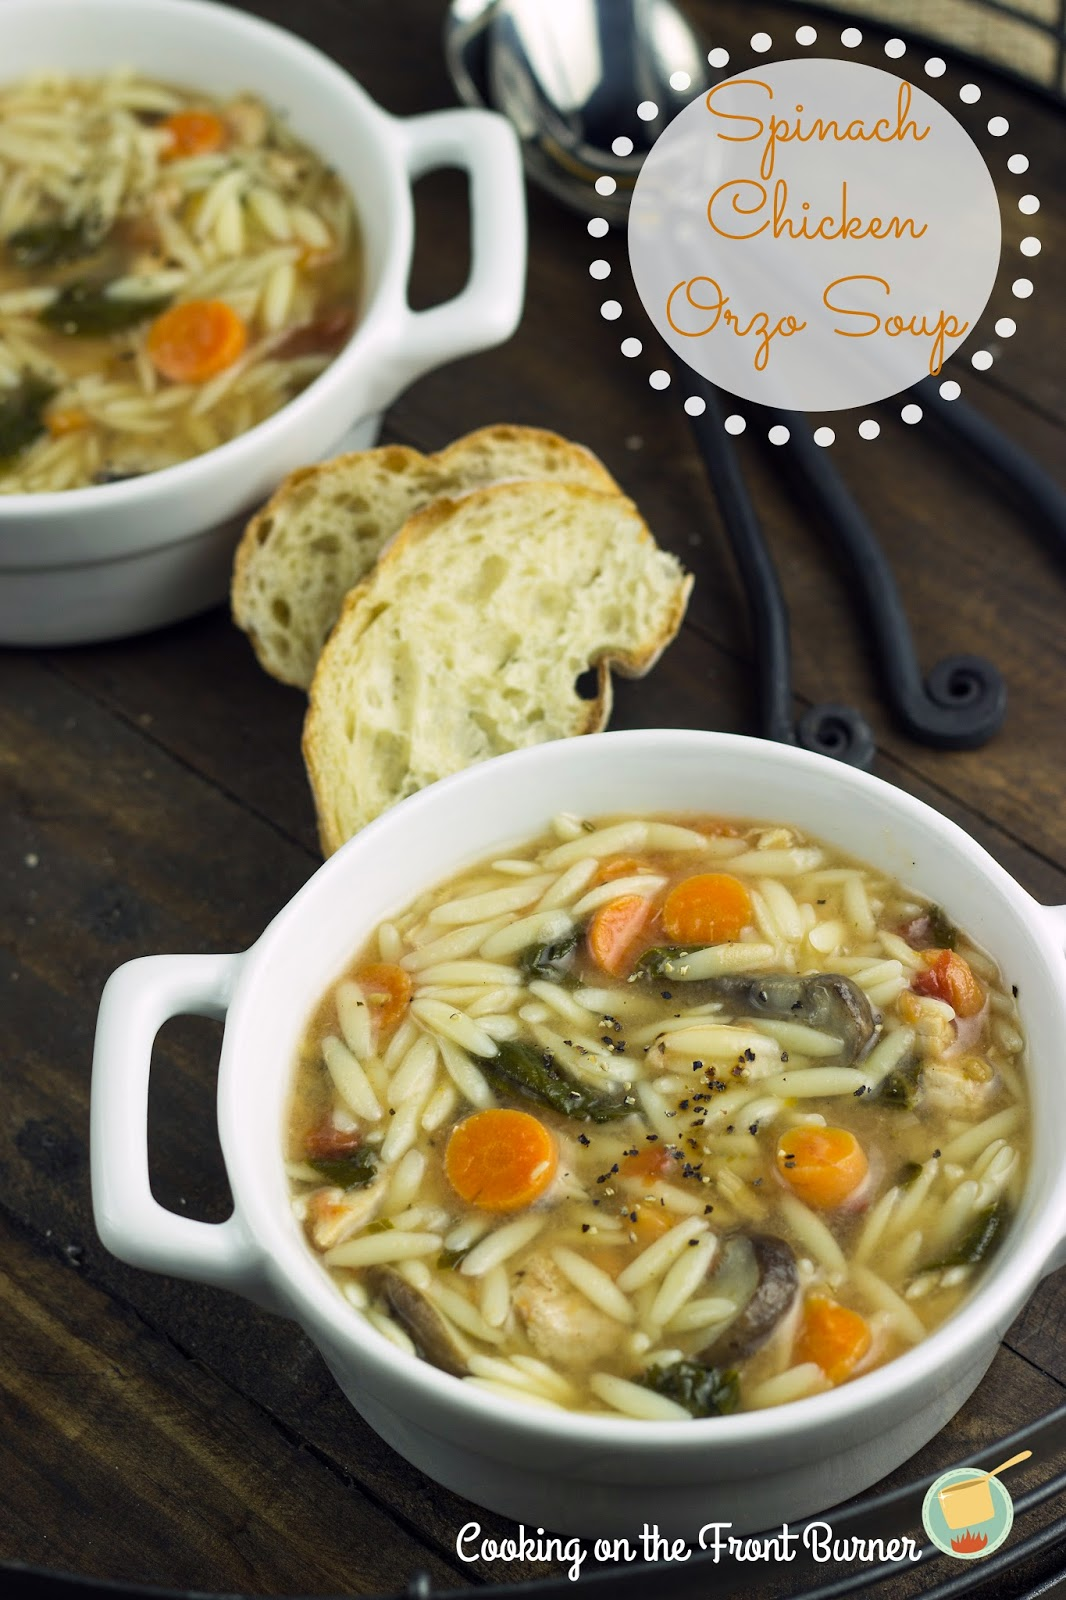 Spinach Chicken Orzo Soup | Cooking on the Front Burner